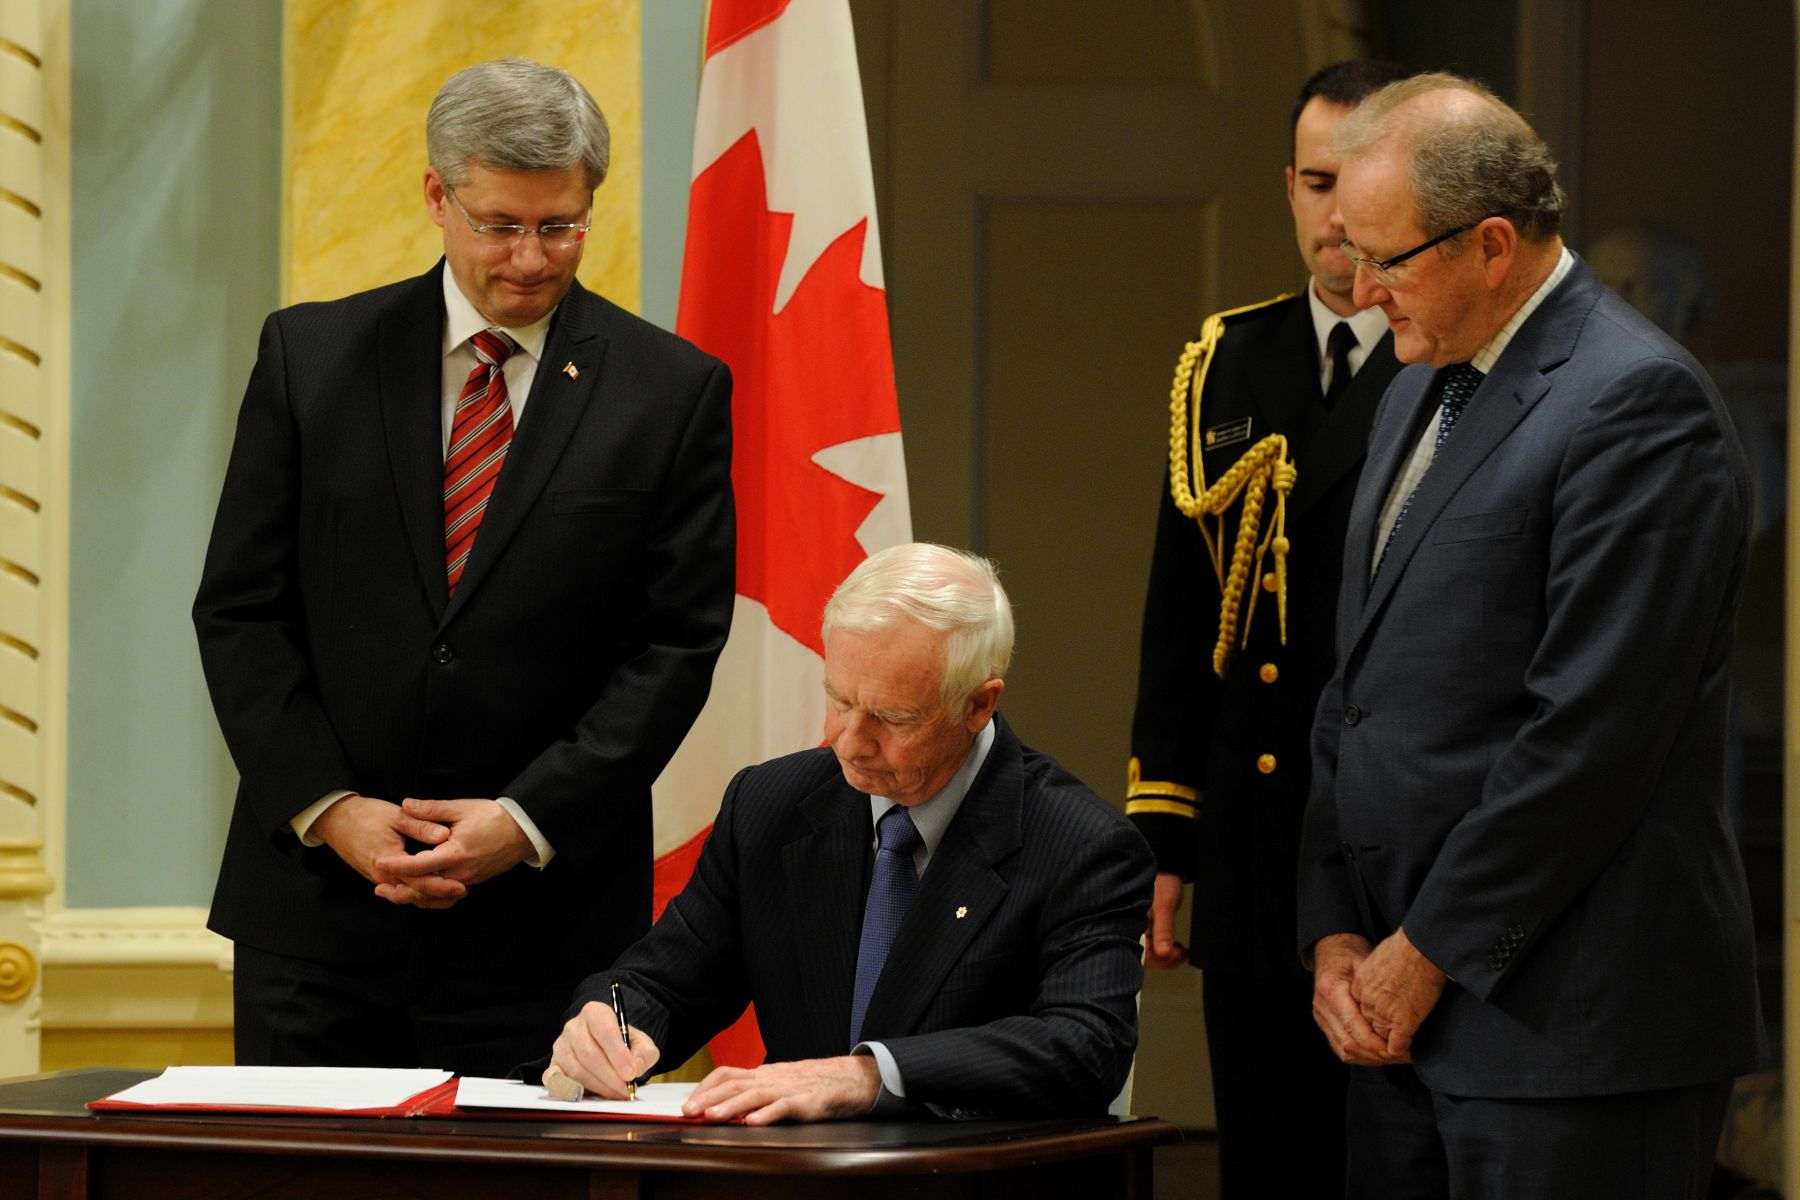 Governor General David Johnston, Prime minister Stephen Harper and Clerk of the Privy Council Mr. Wayne G. Wouters signed the Privy Council Oath Book.